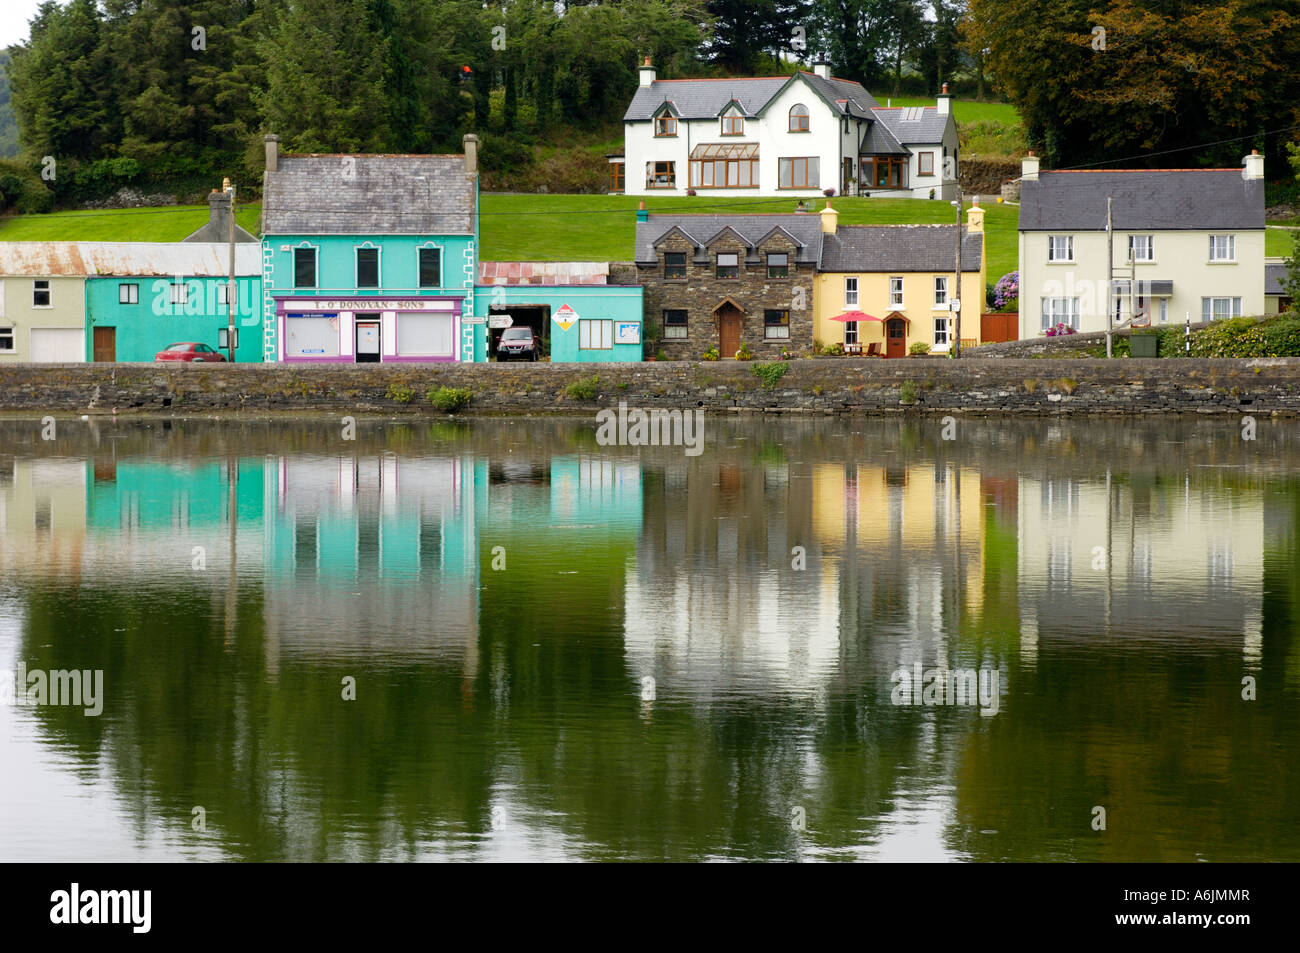 Waterfront Union Hall West Cork Ireland - Stock Image